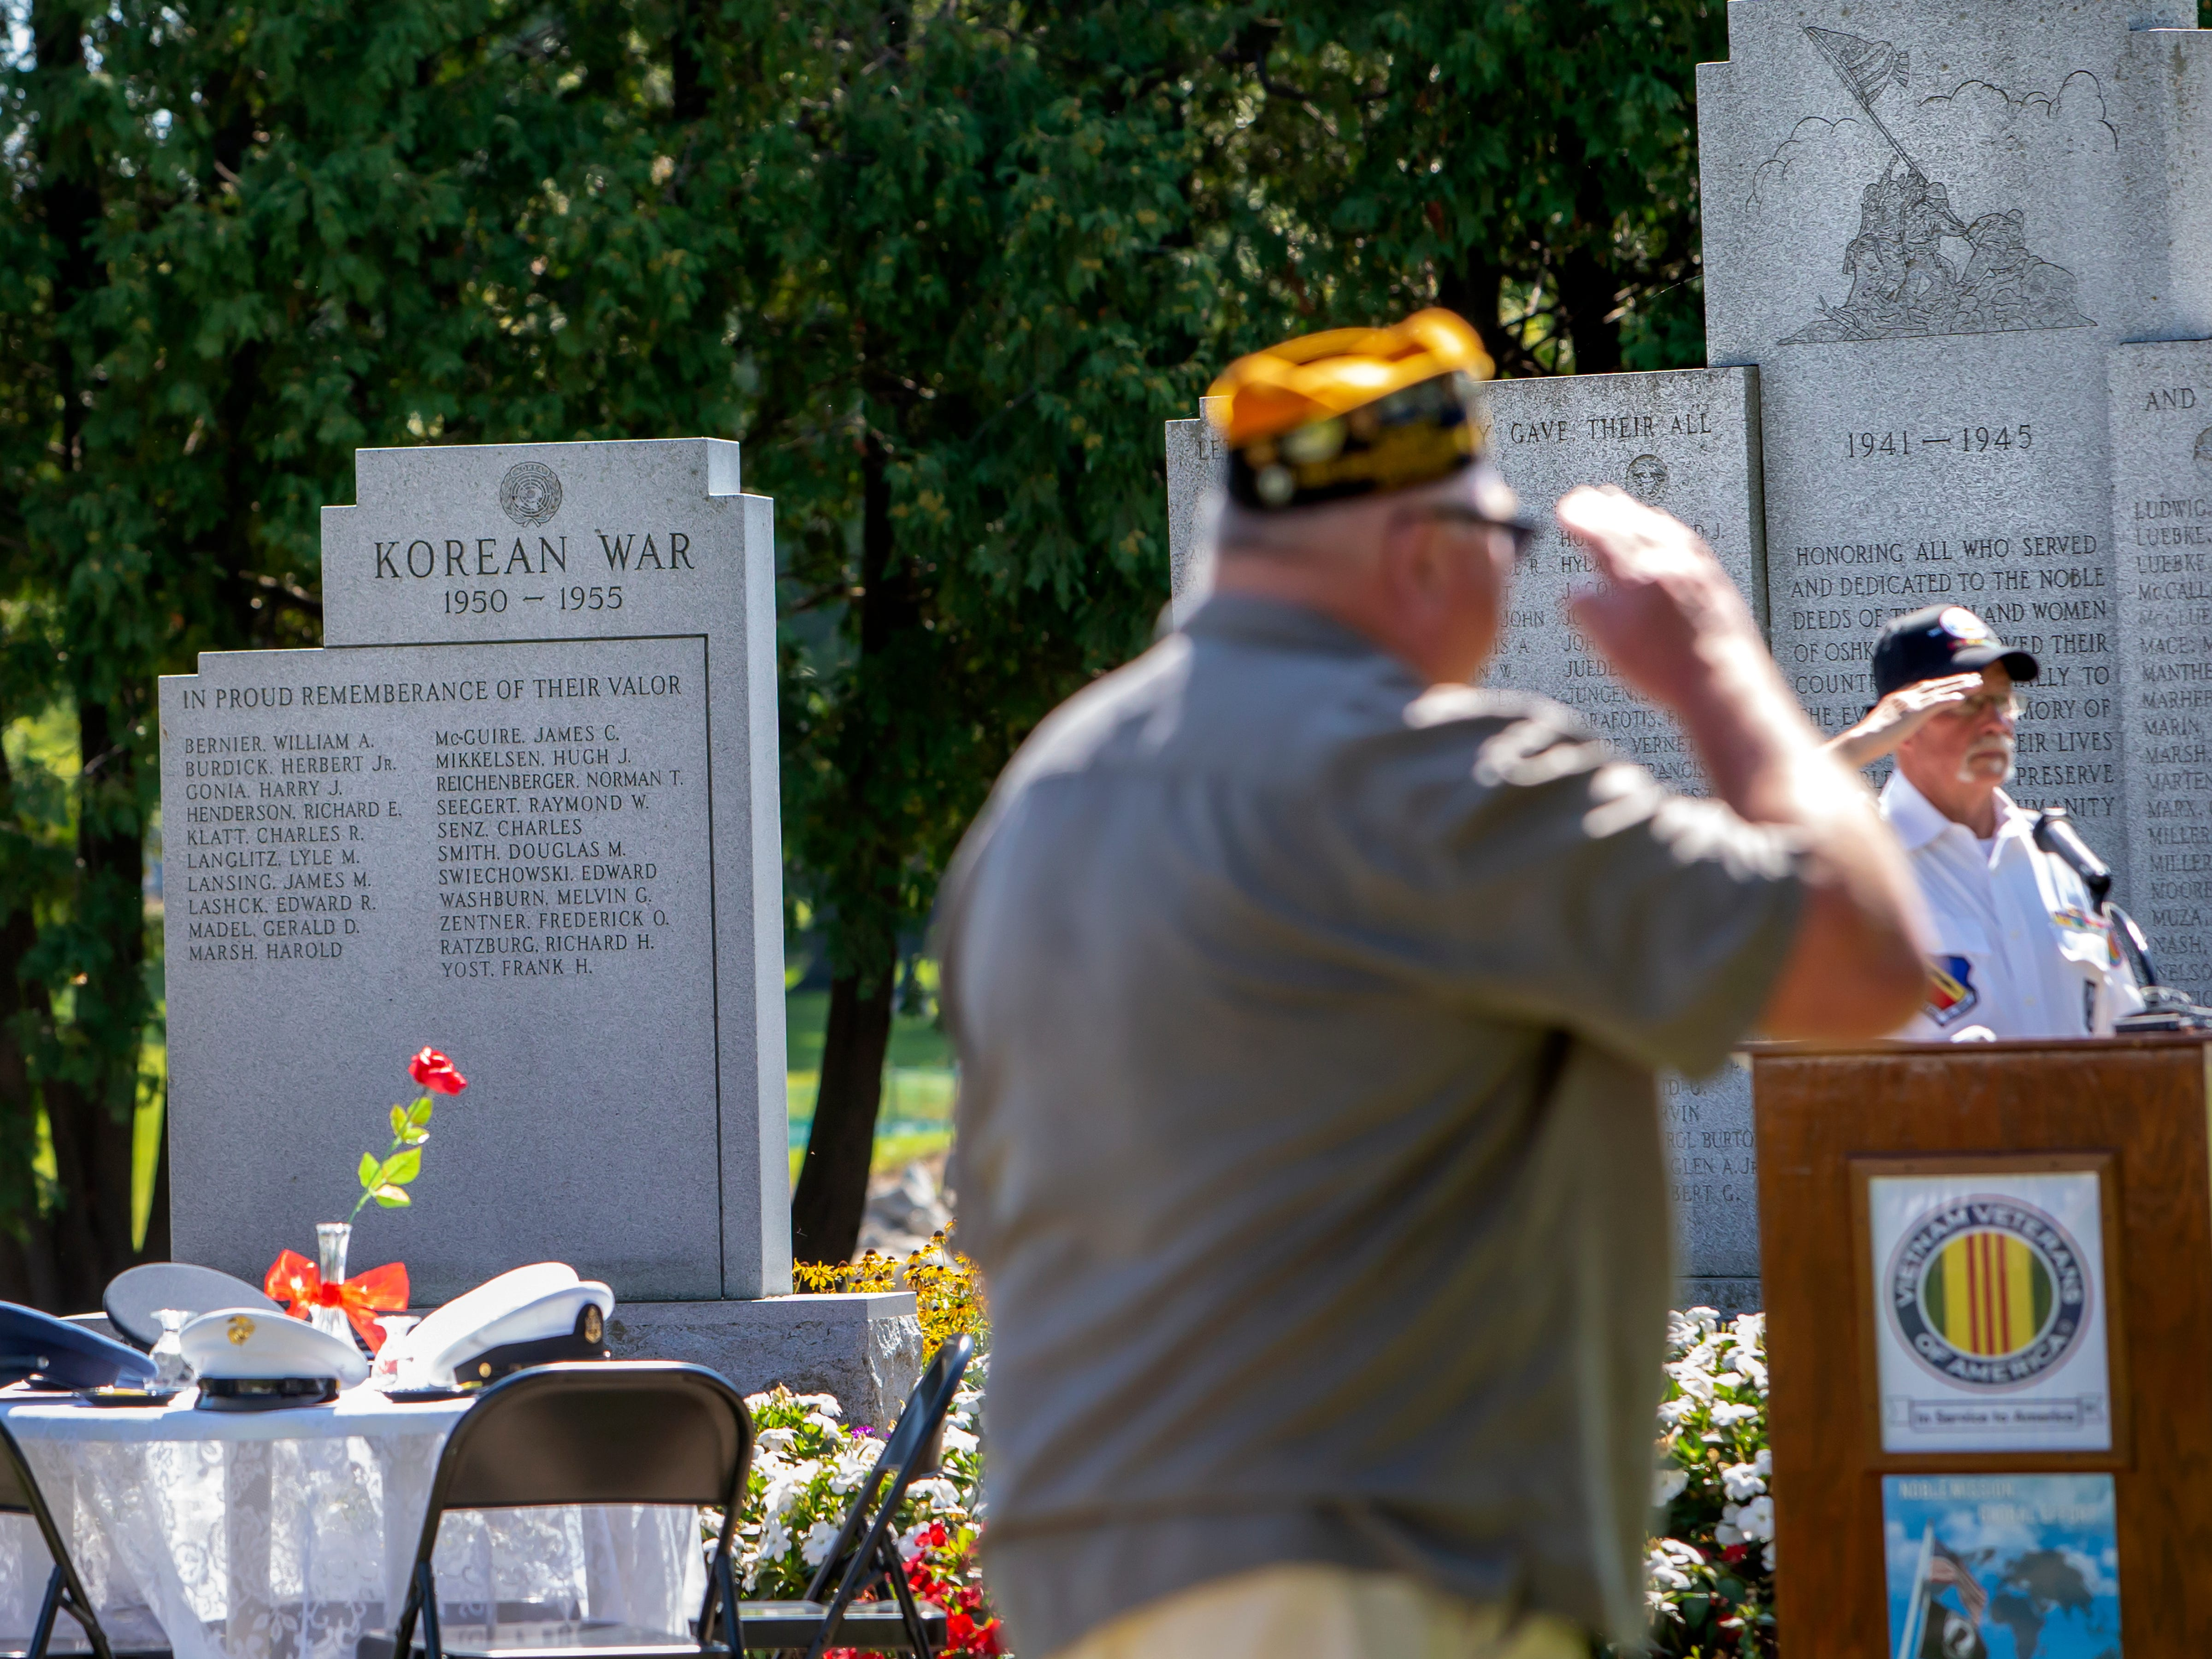 People gather at South Park Veterans Memorial for the annual POW MIA Remembrance Ceremony on Saturday, September 15, 2018.